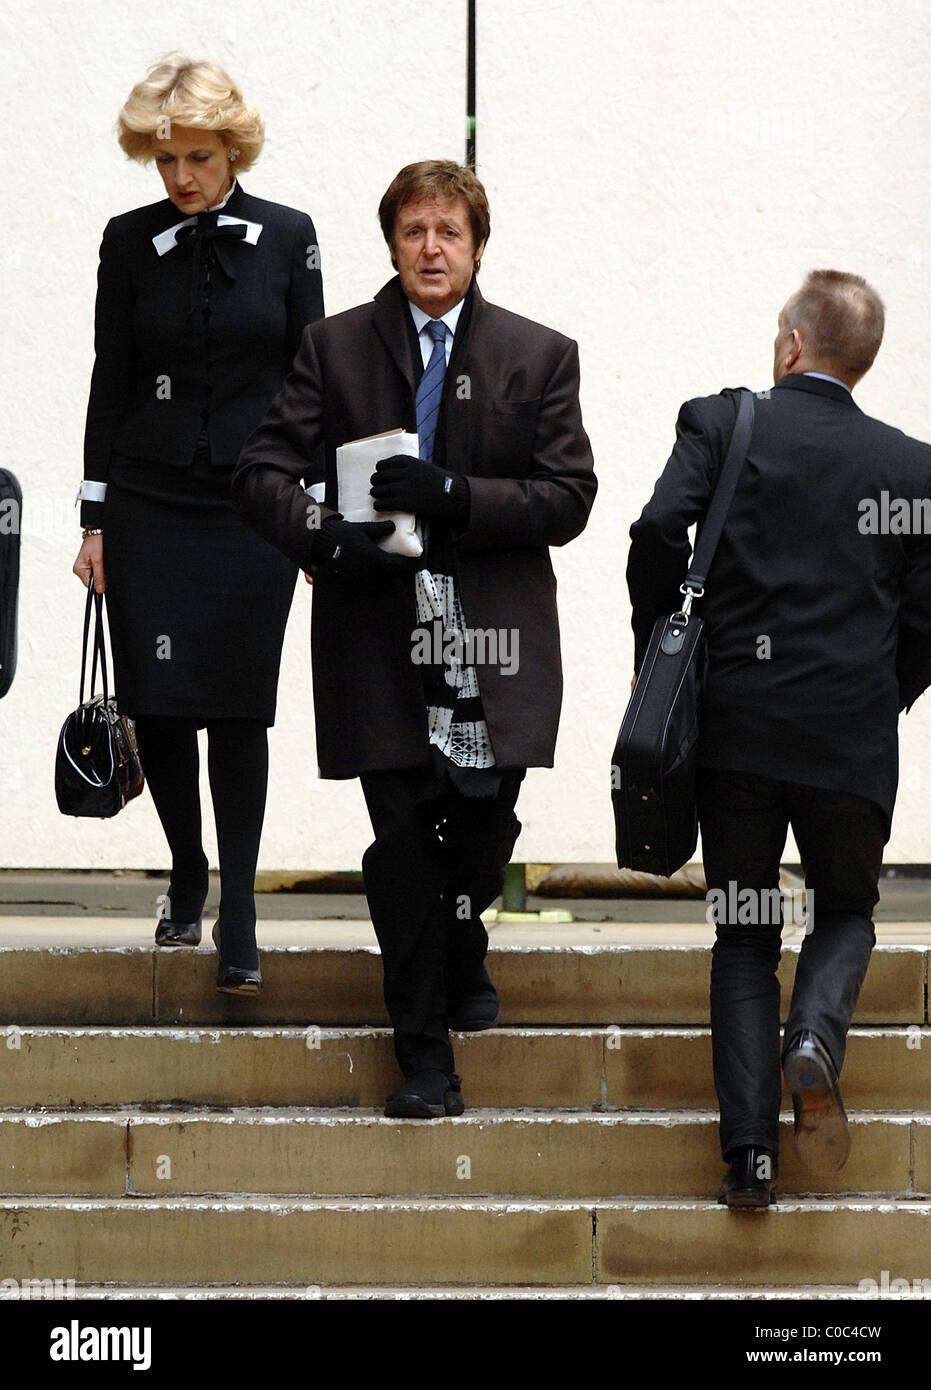 Sir Paul McCartney At The Royal Courts Of Justice On Last Day His Divorce